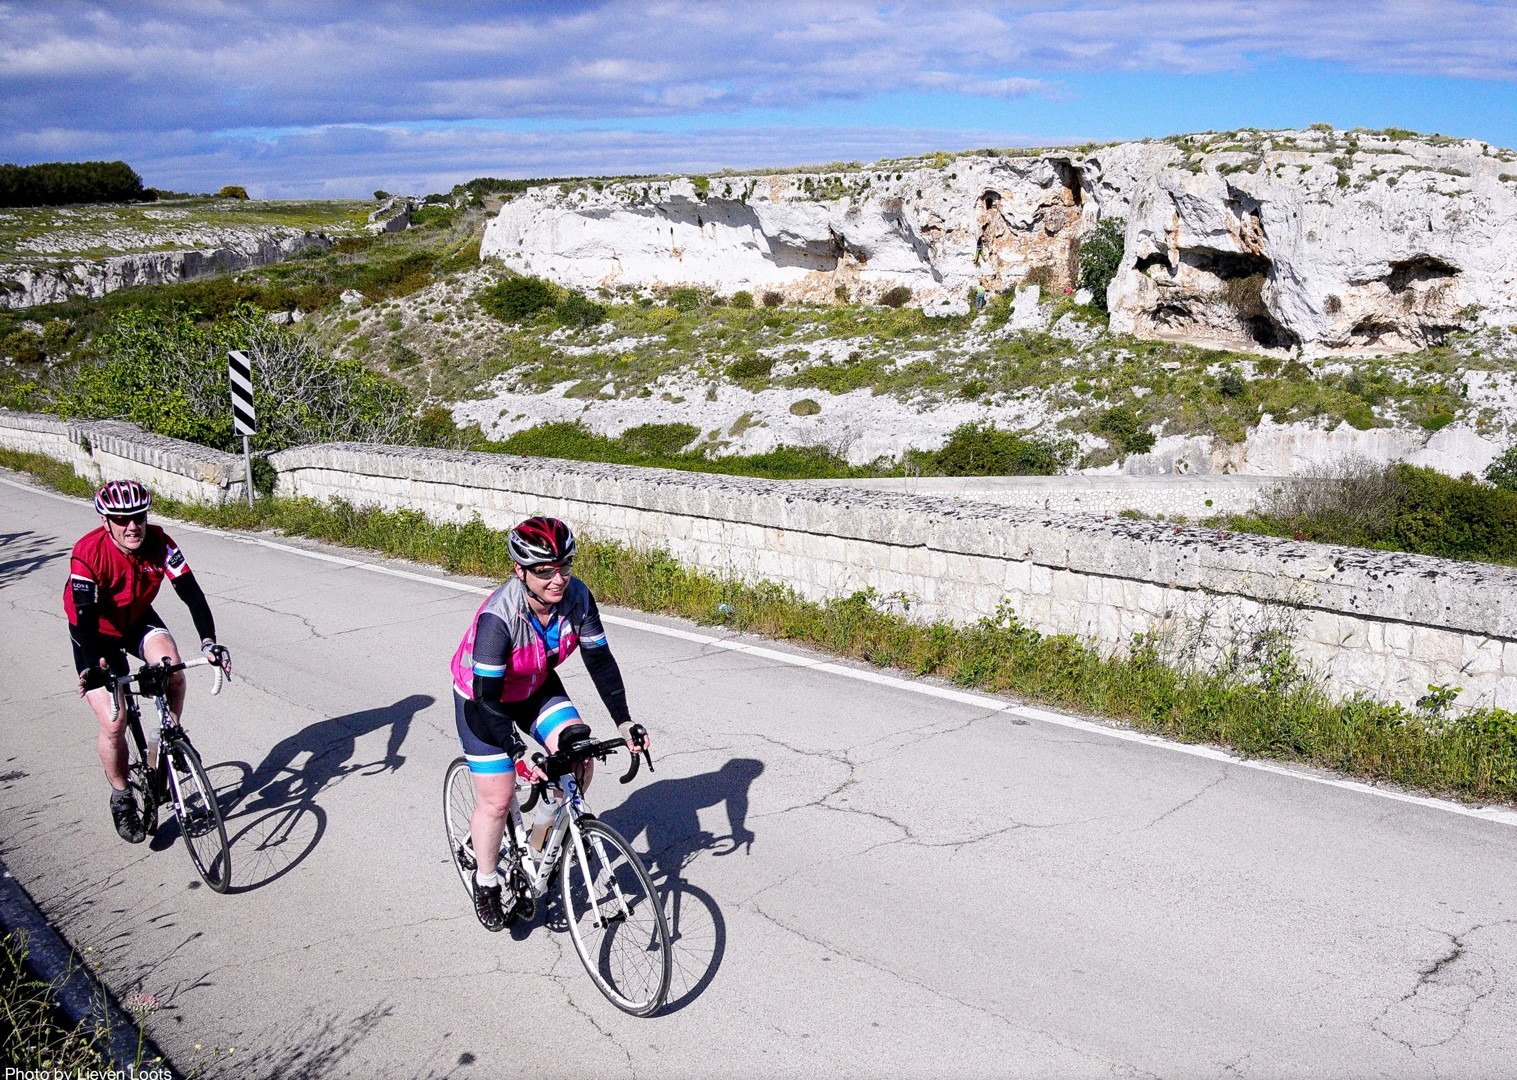 cycling-holiday-in-puglia-italy.jpg - Italy - Puglia - The Heel of Italy - Guided Road Cycling Holiday - Italia Road Cycling